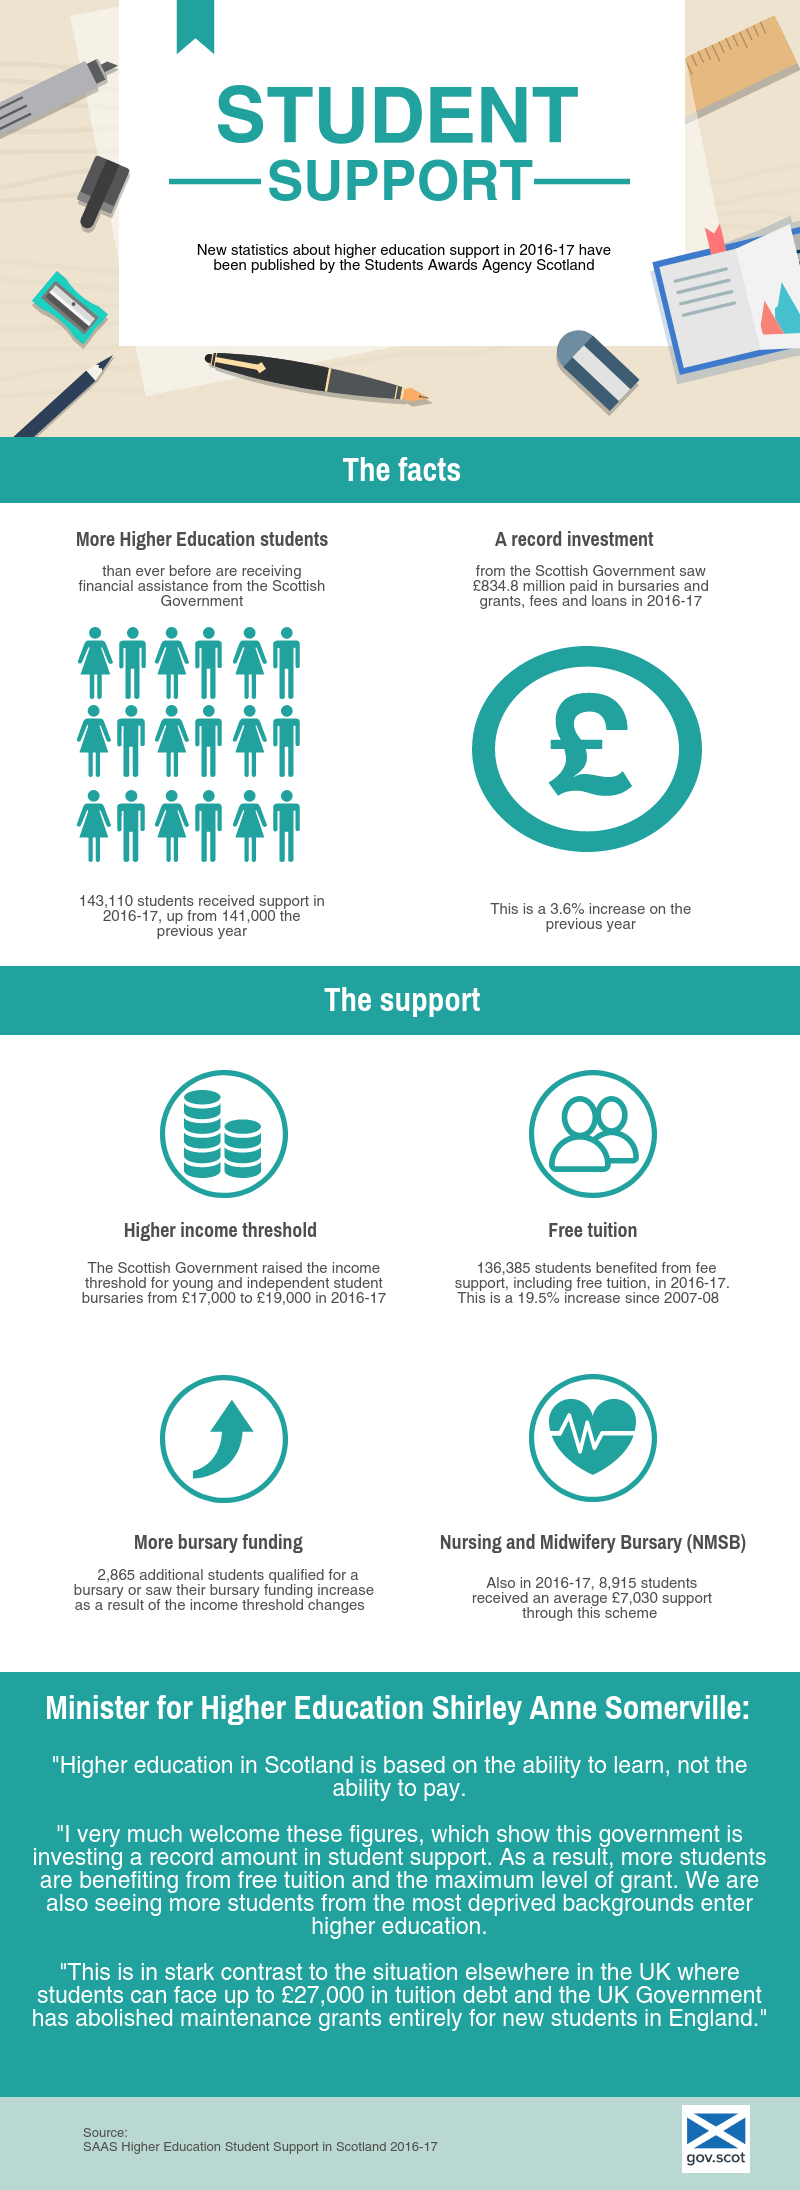 Infographic showing new statistics from Student Awards Agency Scotland showing record investment